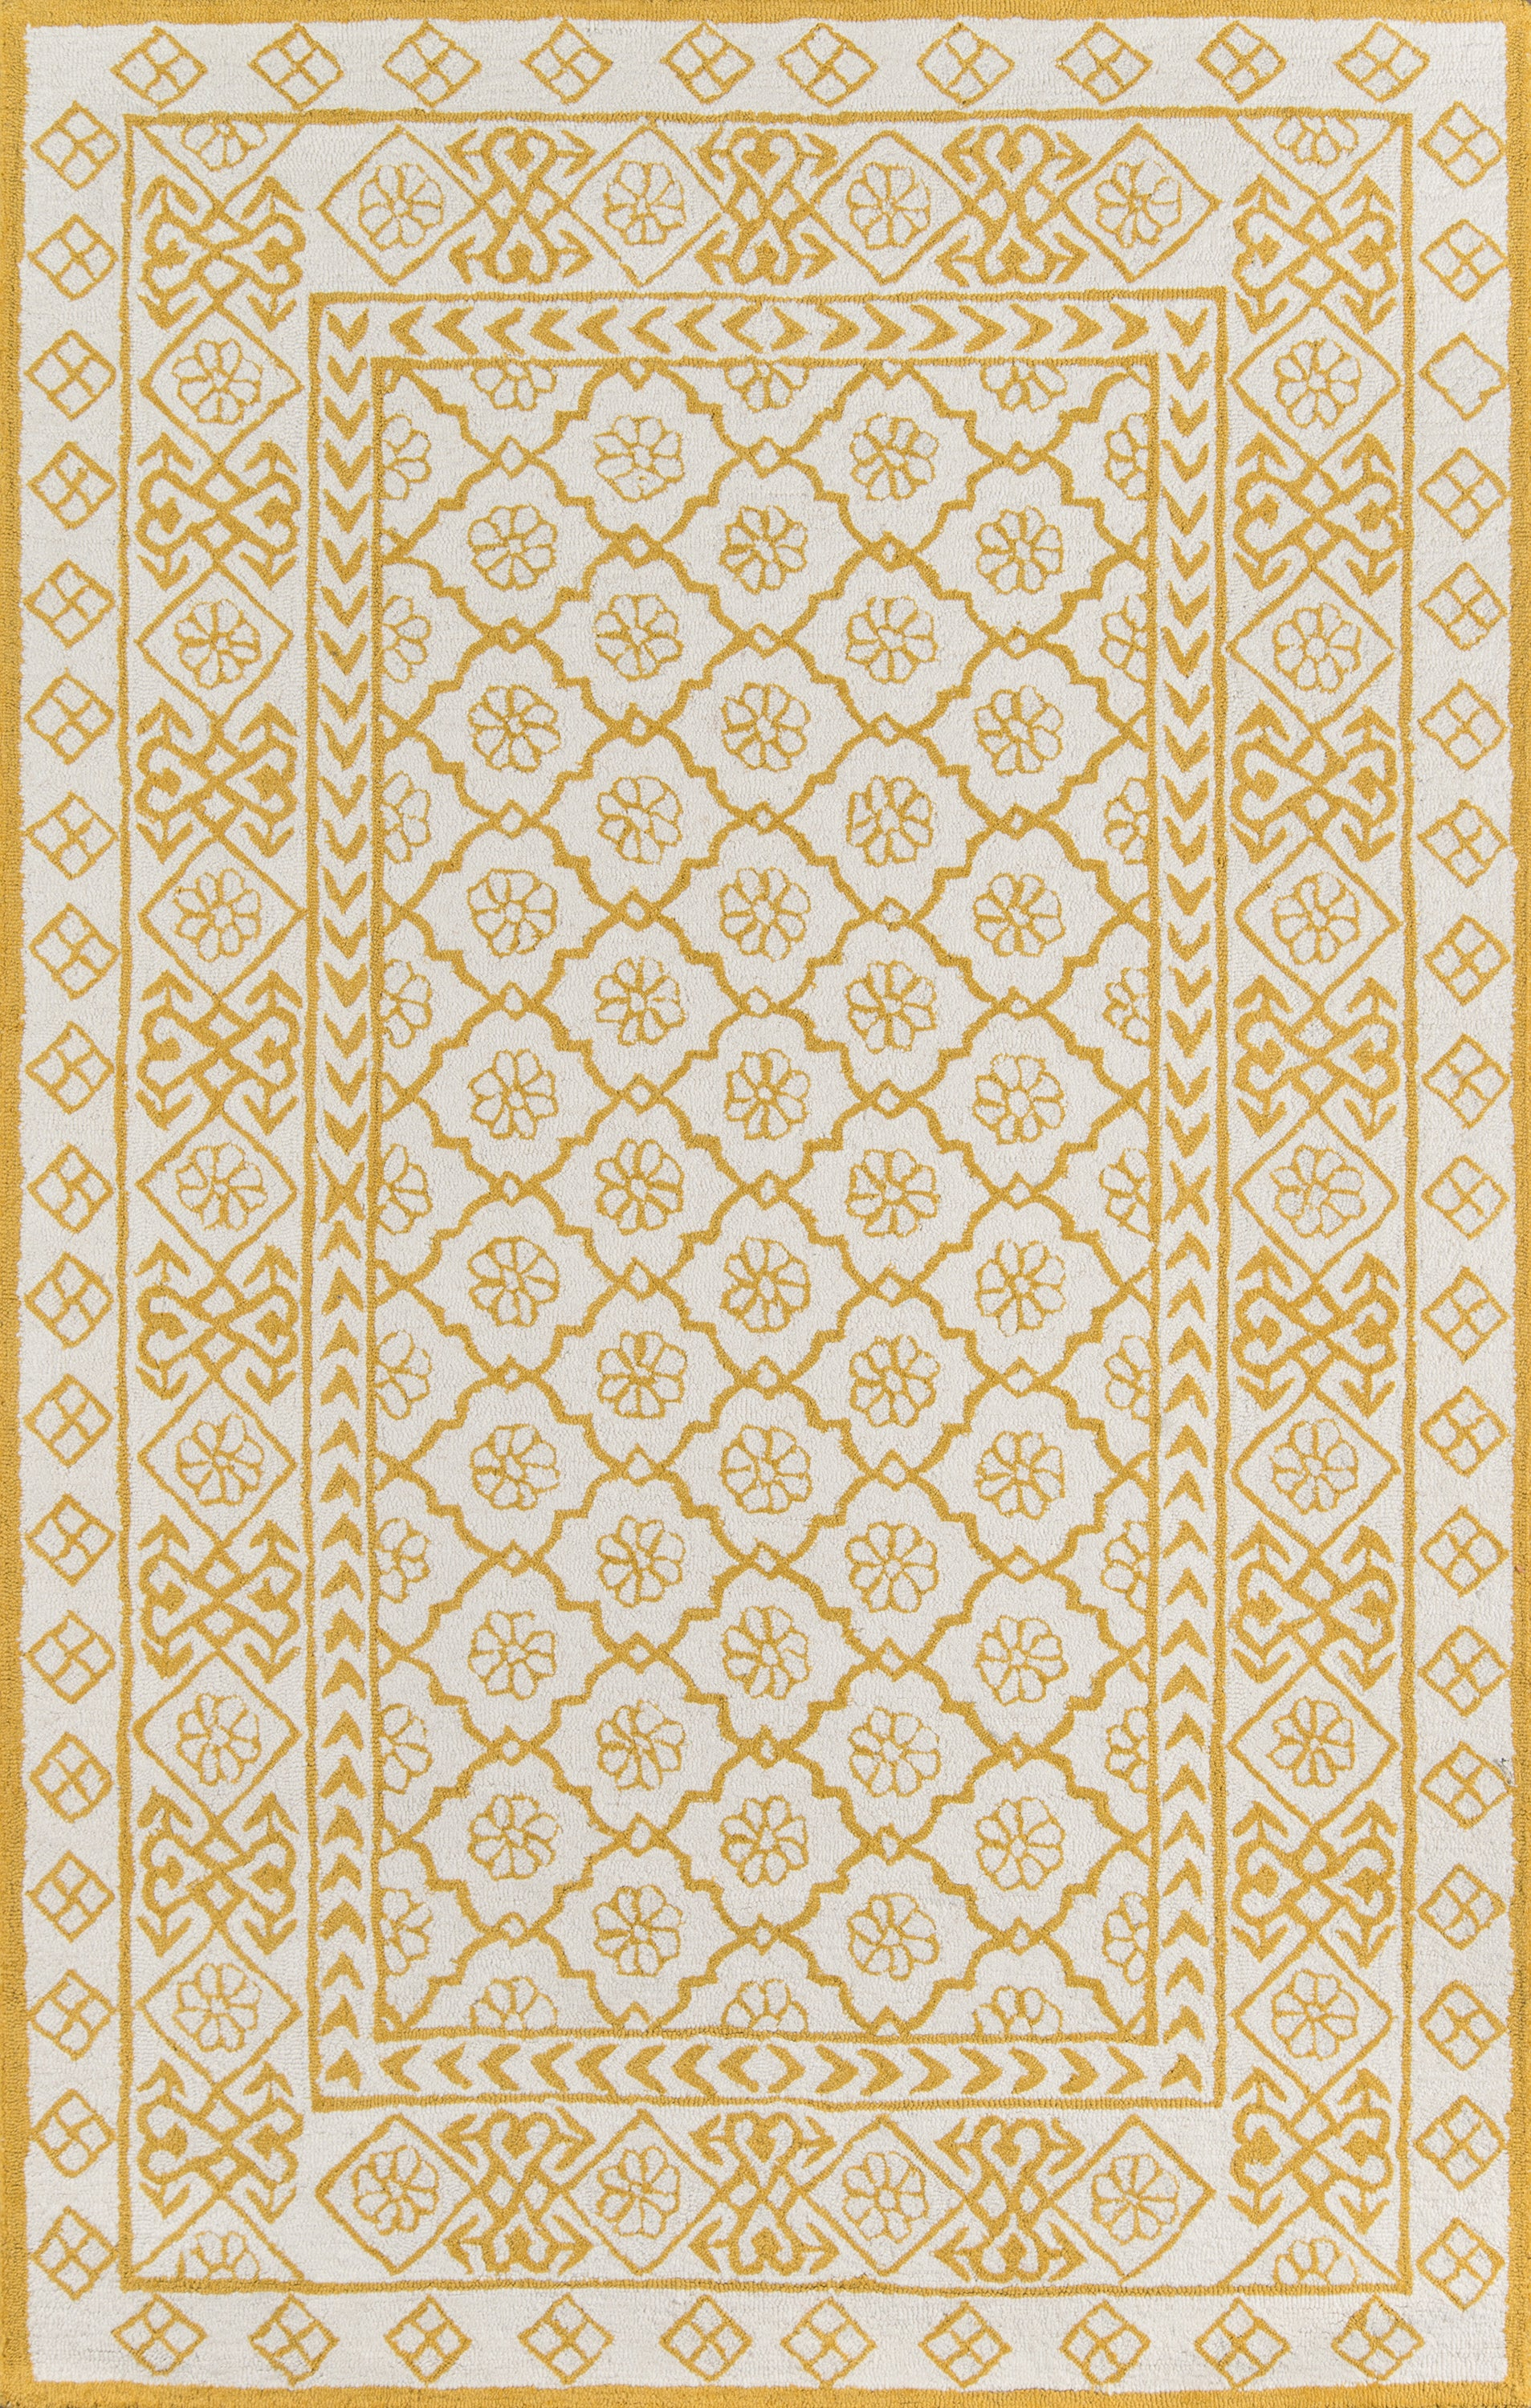 Rectangle 2x3 Gold Geometric Hand Tufted Wool Contemporary recommended for Kitchen, Bedroom, Bathroom, Dining Room, Office, Hallway, Living Room